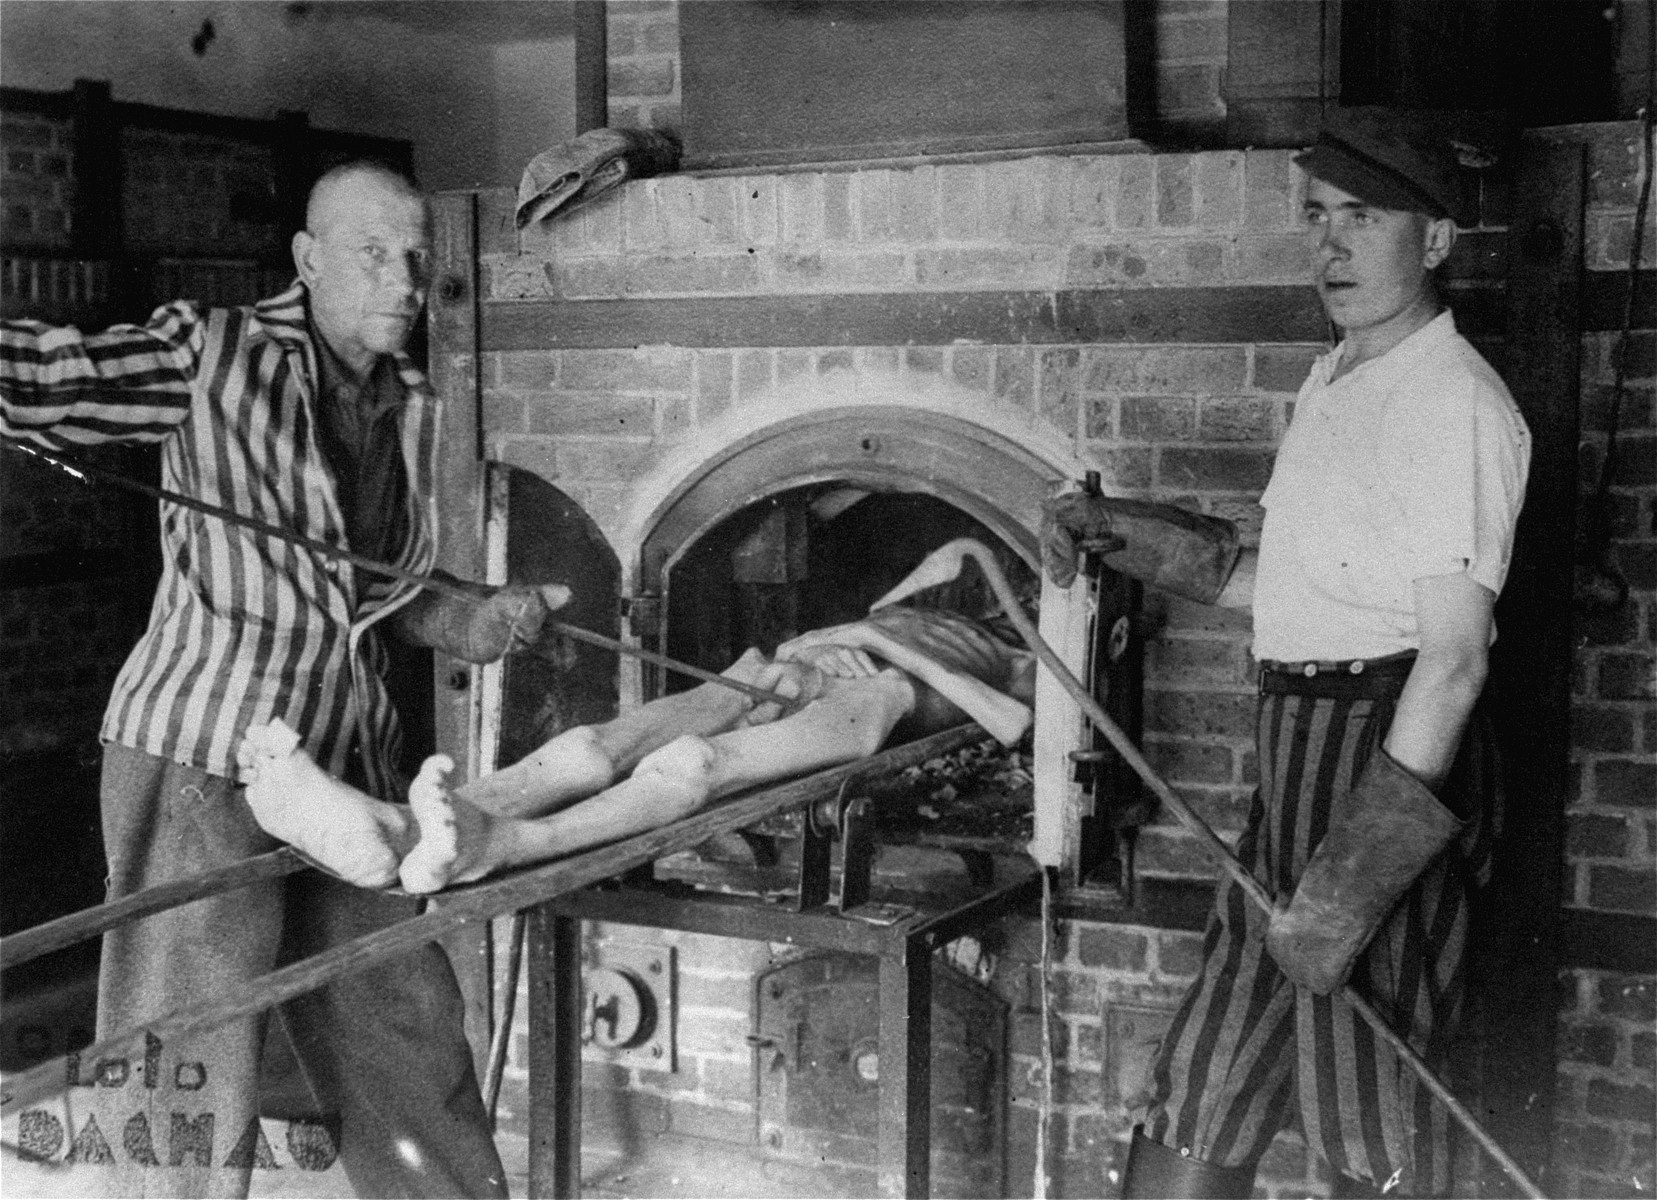 Survivors of the Dachau concentration camp demonstrate the operation of the crematorium by pushing a corpse into one of the ovens.